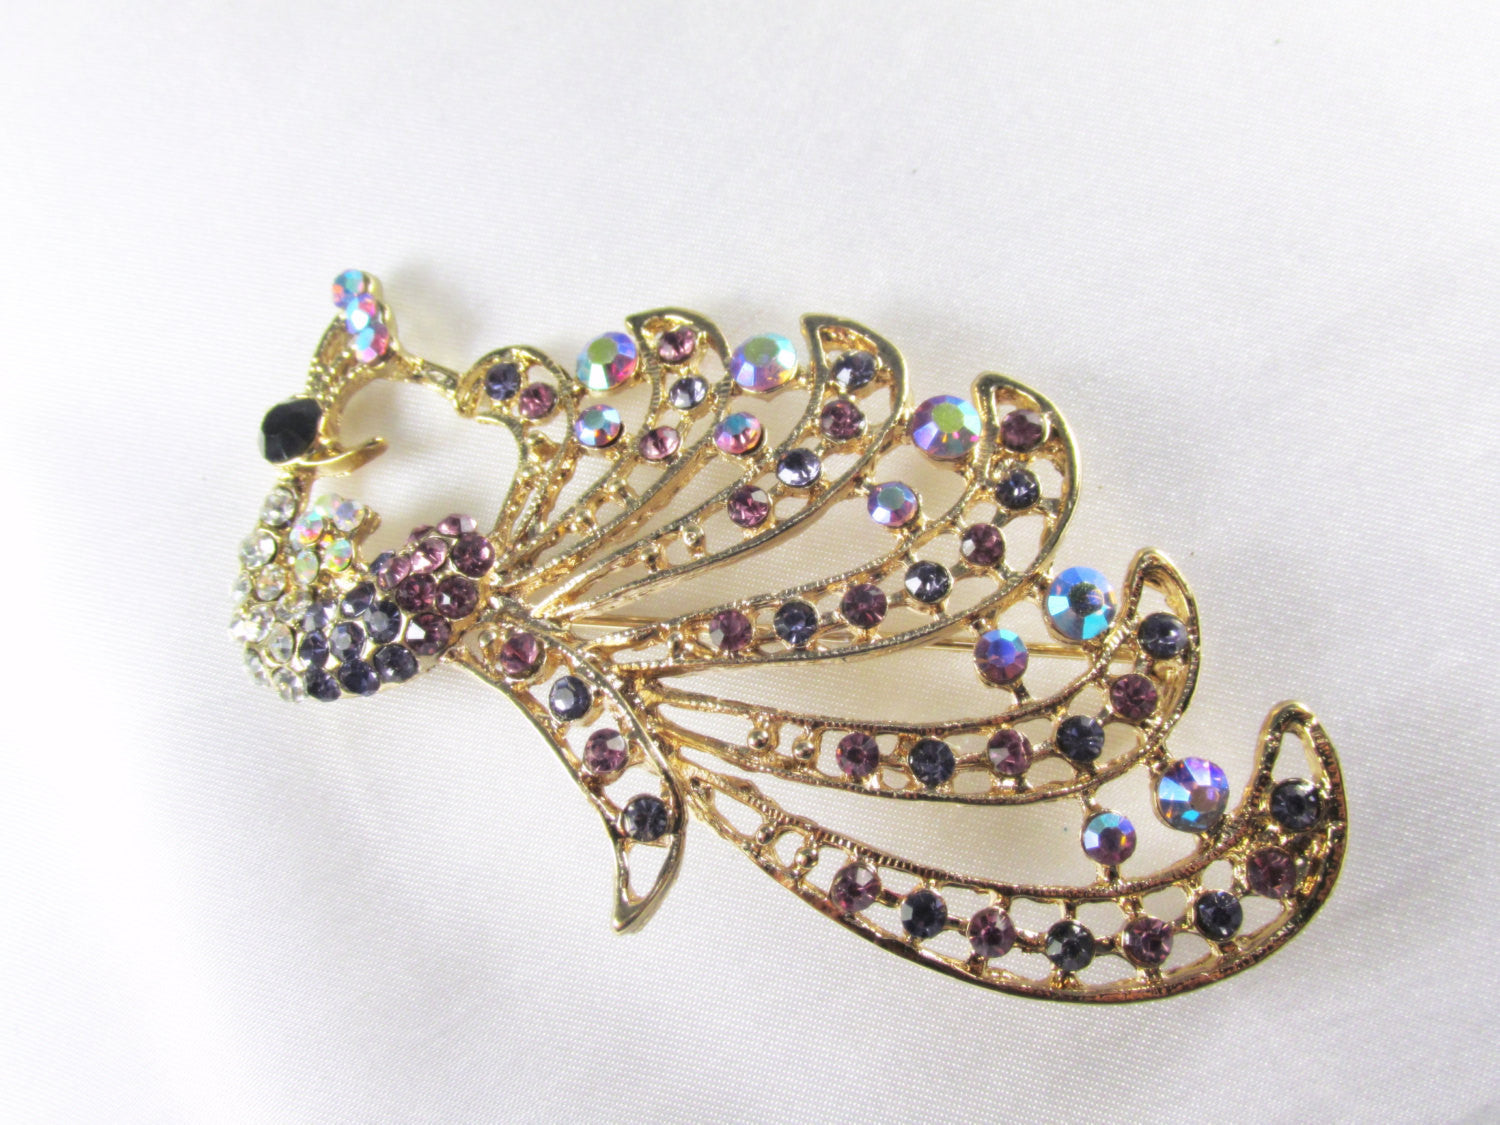 Peacock Cascading Brooch in Purple, Turquoise and Gold - Odyssey Creations